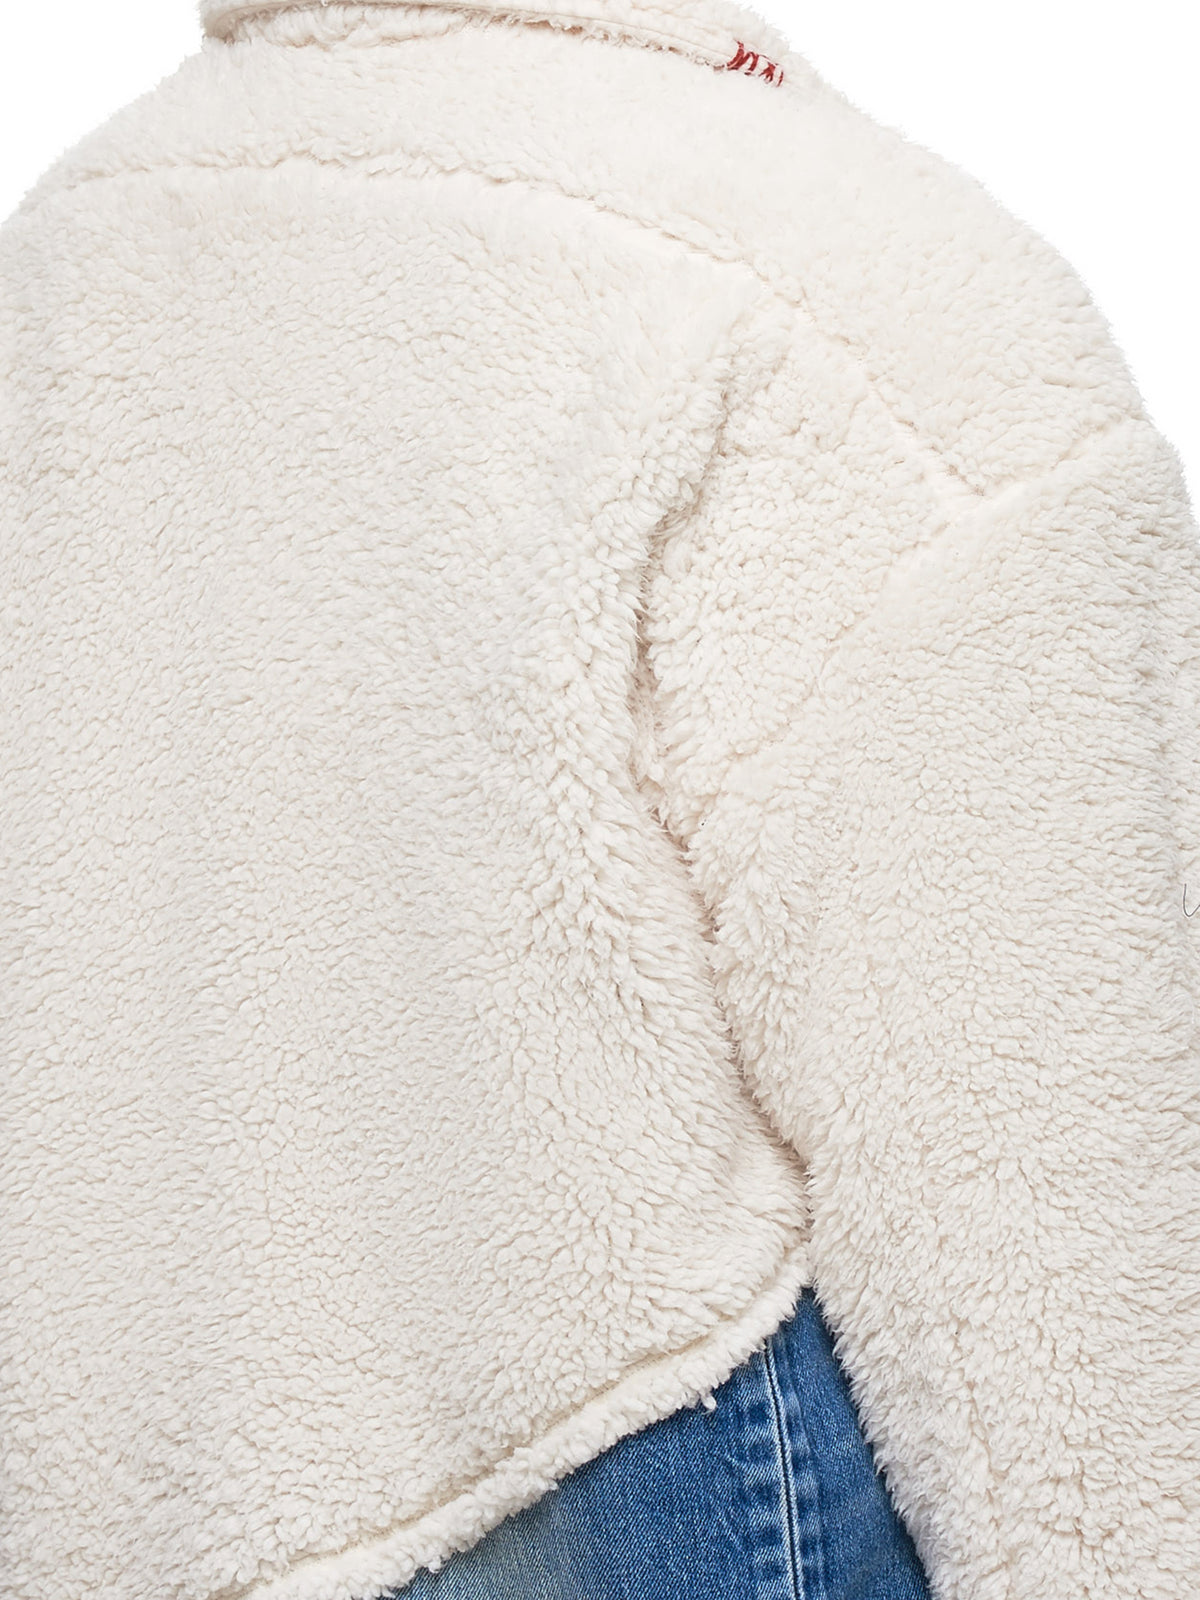 Greg Lauren Fur Jacket - Hlorenzo Detail 2